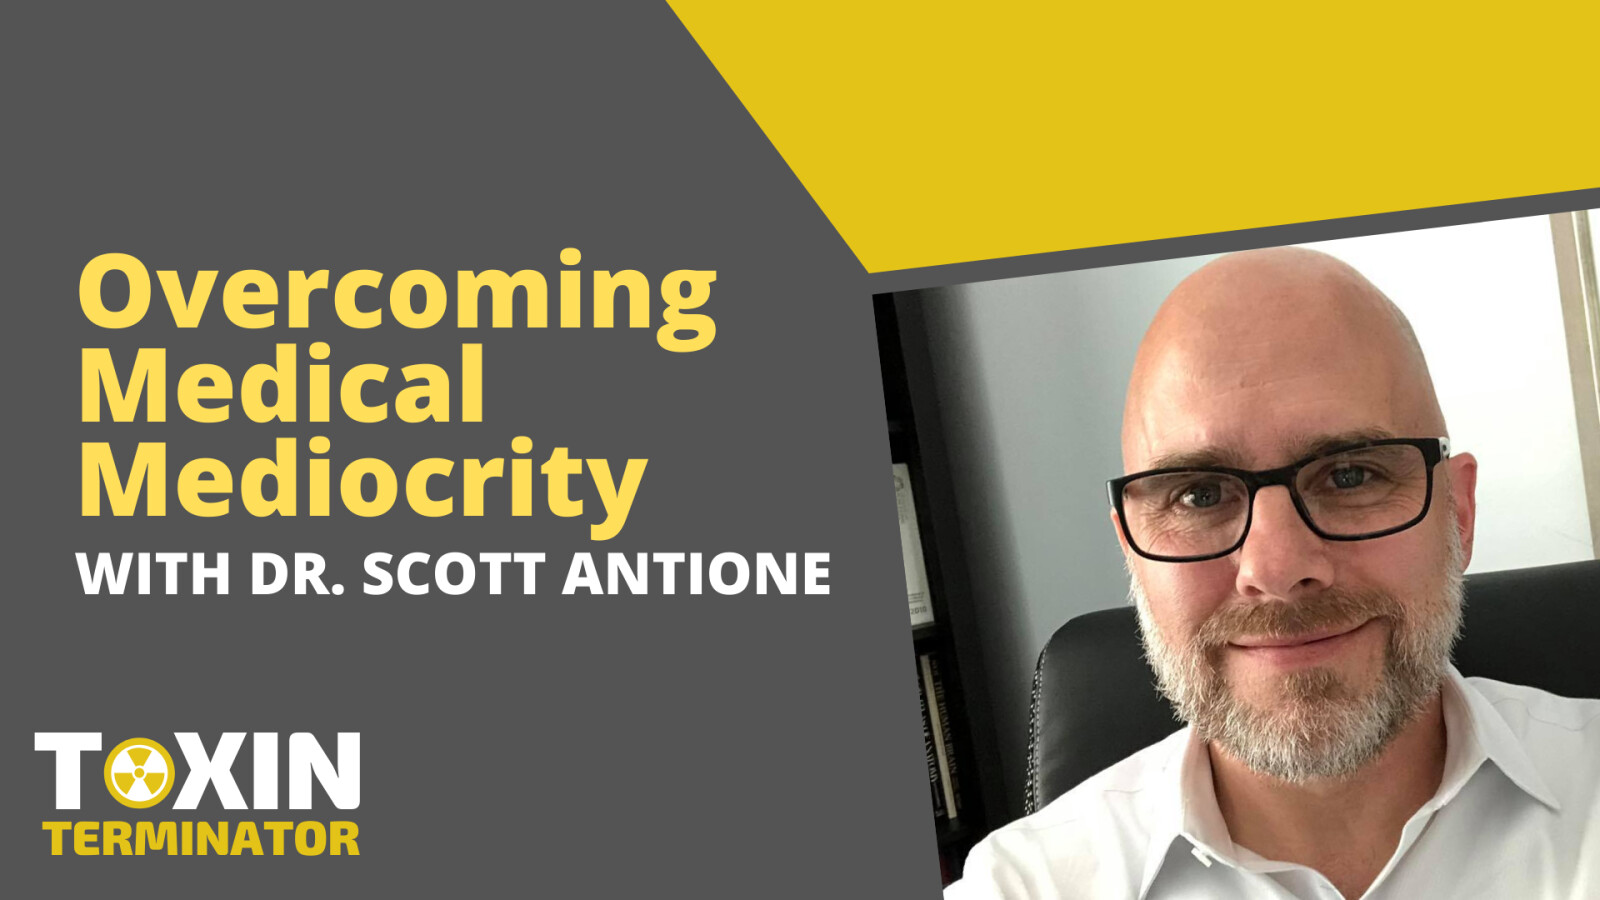 Overcoming Medical Mediocrity with Dr. Scott Antione